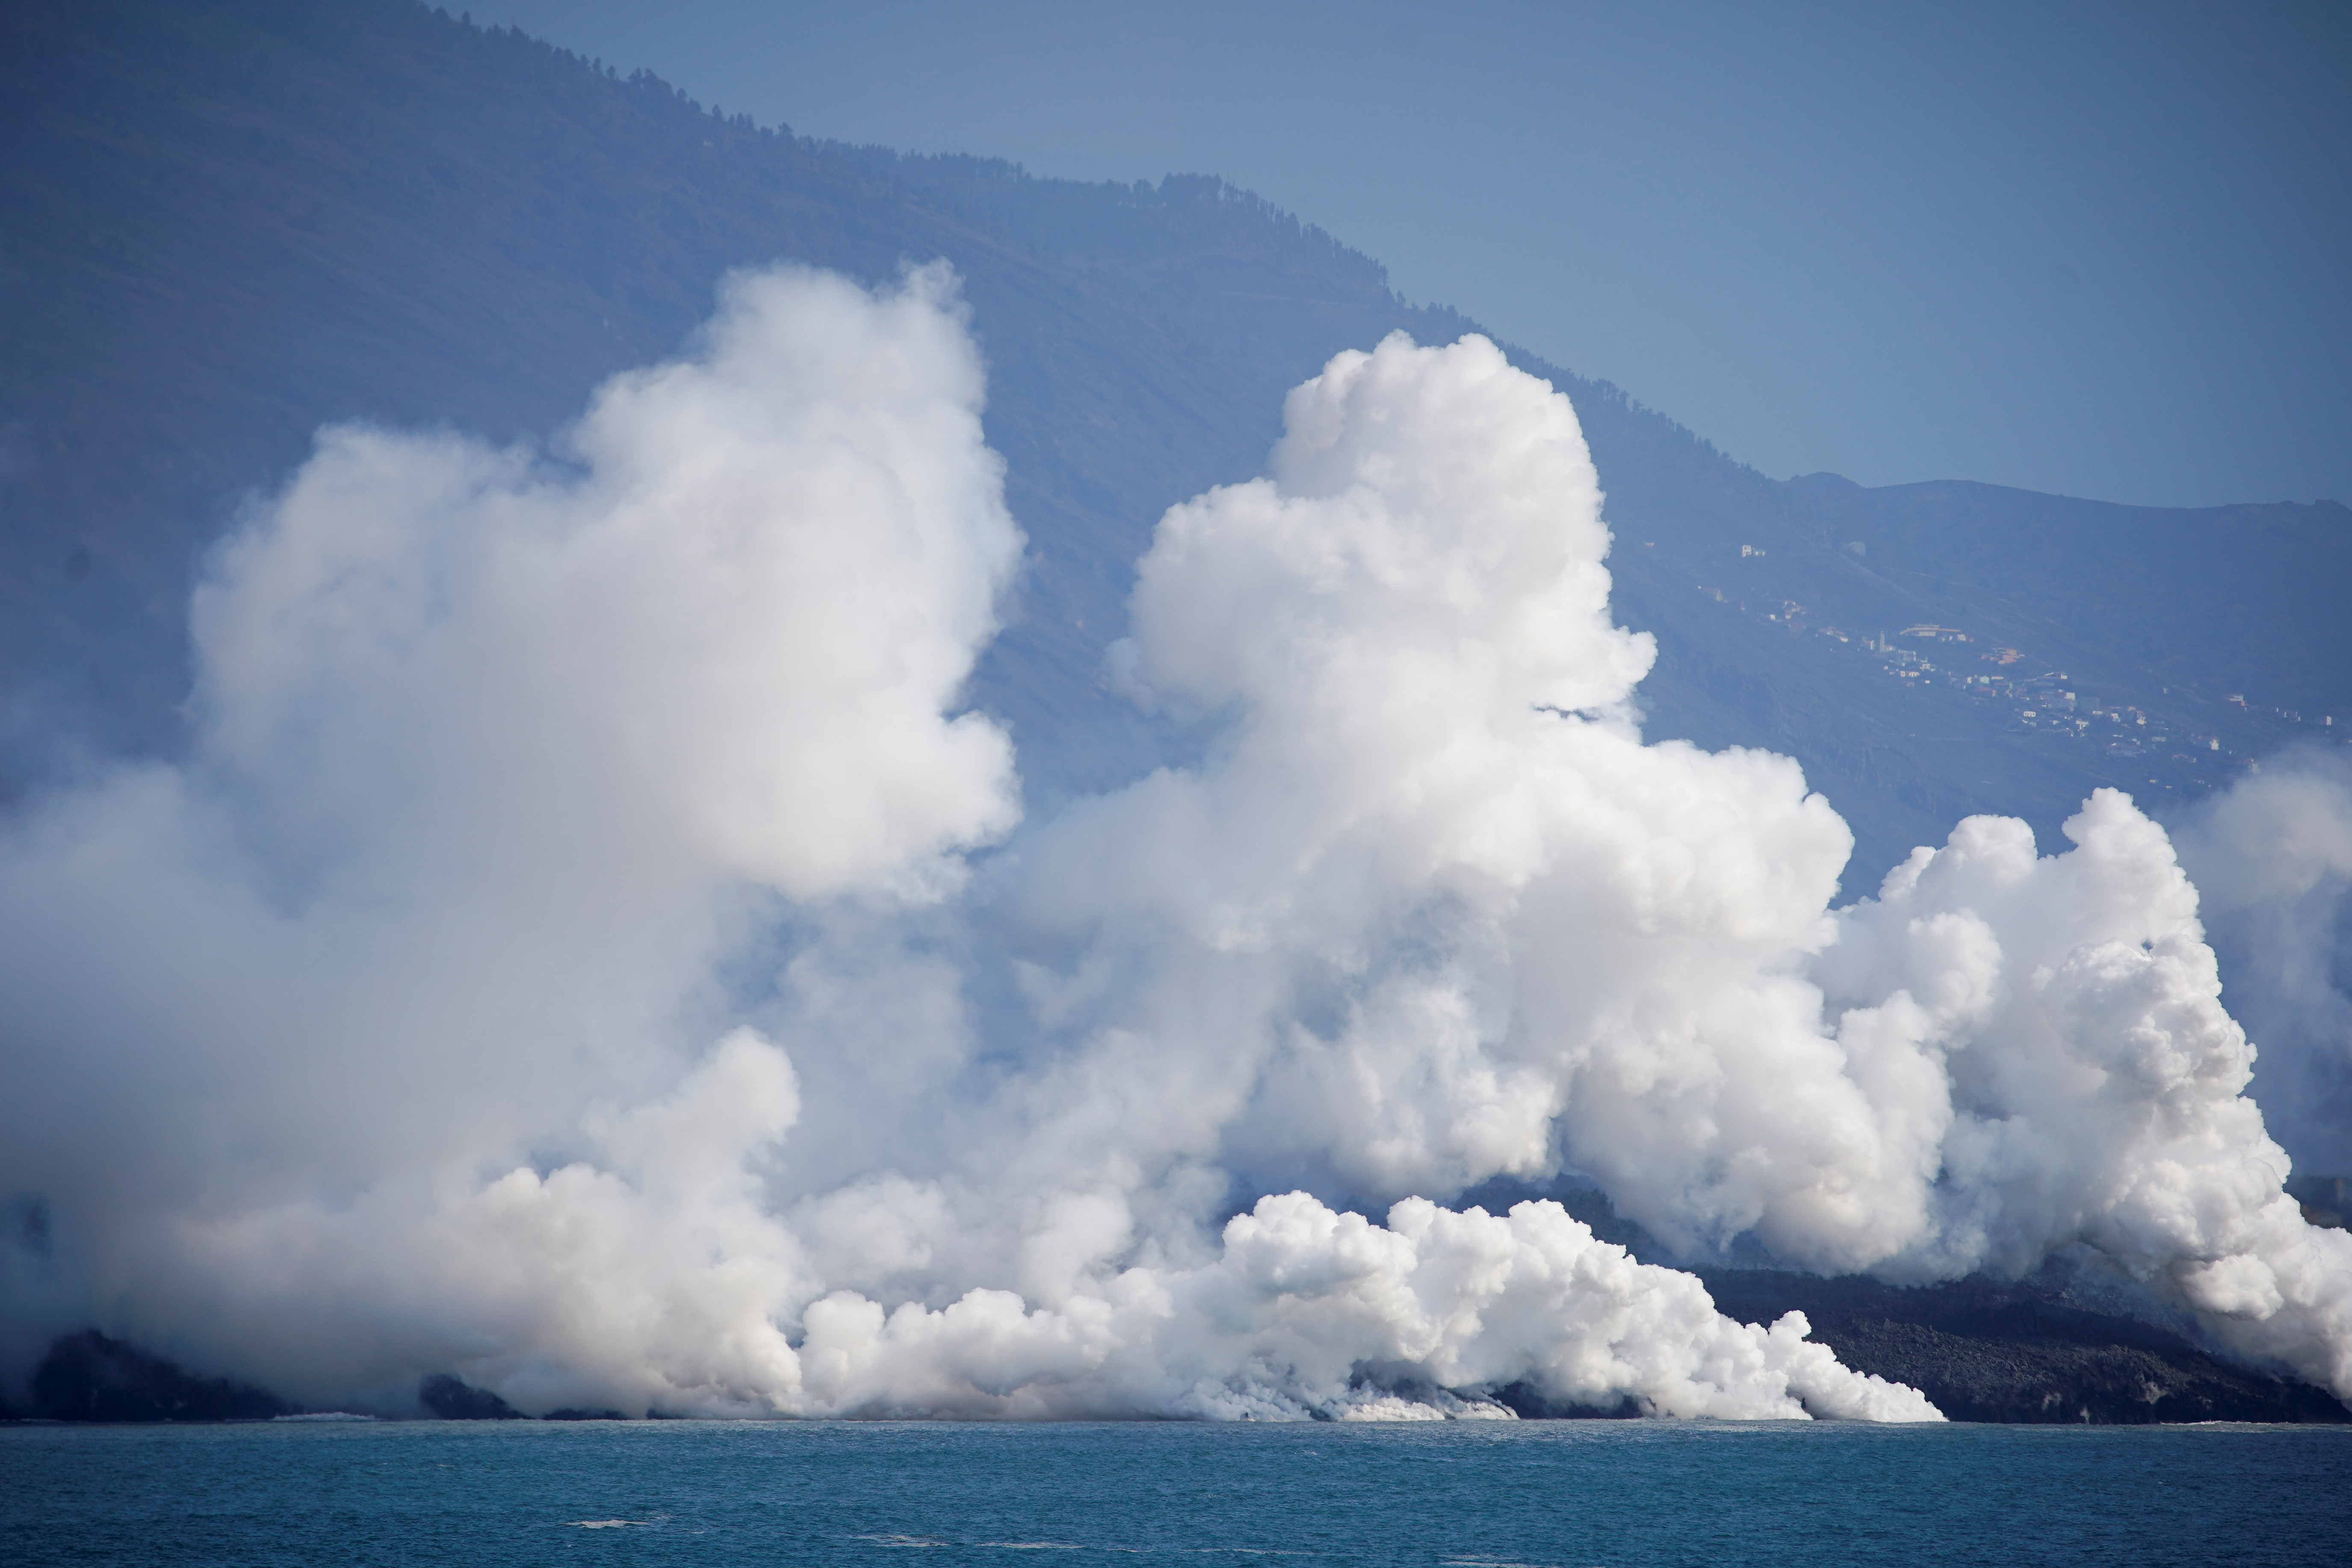 Smoke rises as lava flows into the sea following the eruption of a volcano, as seen from Tazacorte port, Canary Island of La Palma, Spain, October 6, 2021. REUTERS/Juan Medina